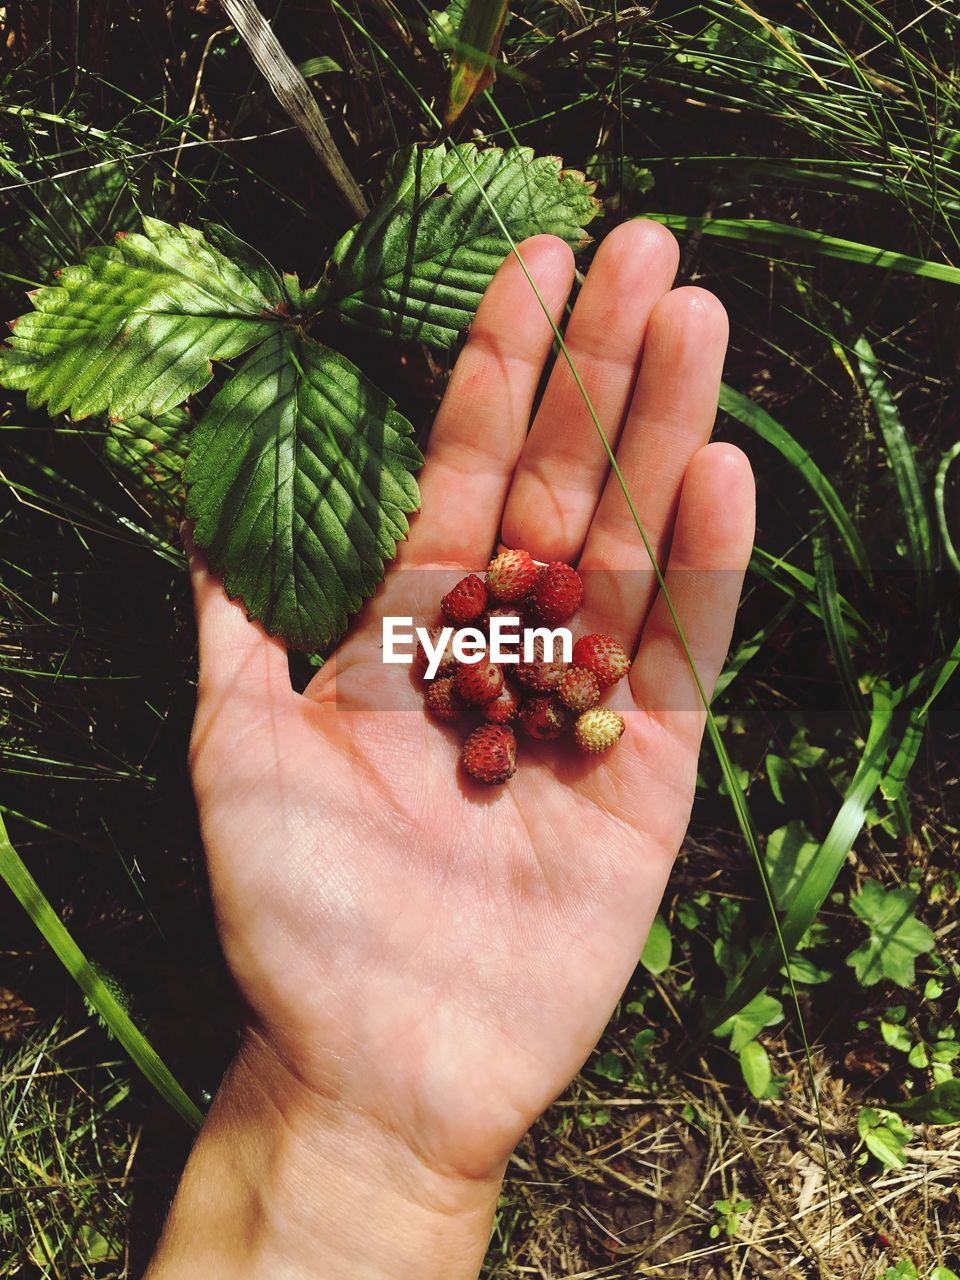 human hand, hand, human body part, real people, food and drink, one person, food, healthy eating, fruit, holding, berry fruit, body part, plant, personal perspective, unrecognizable person, freshness, wellbeing, finger, day, nature